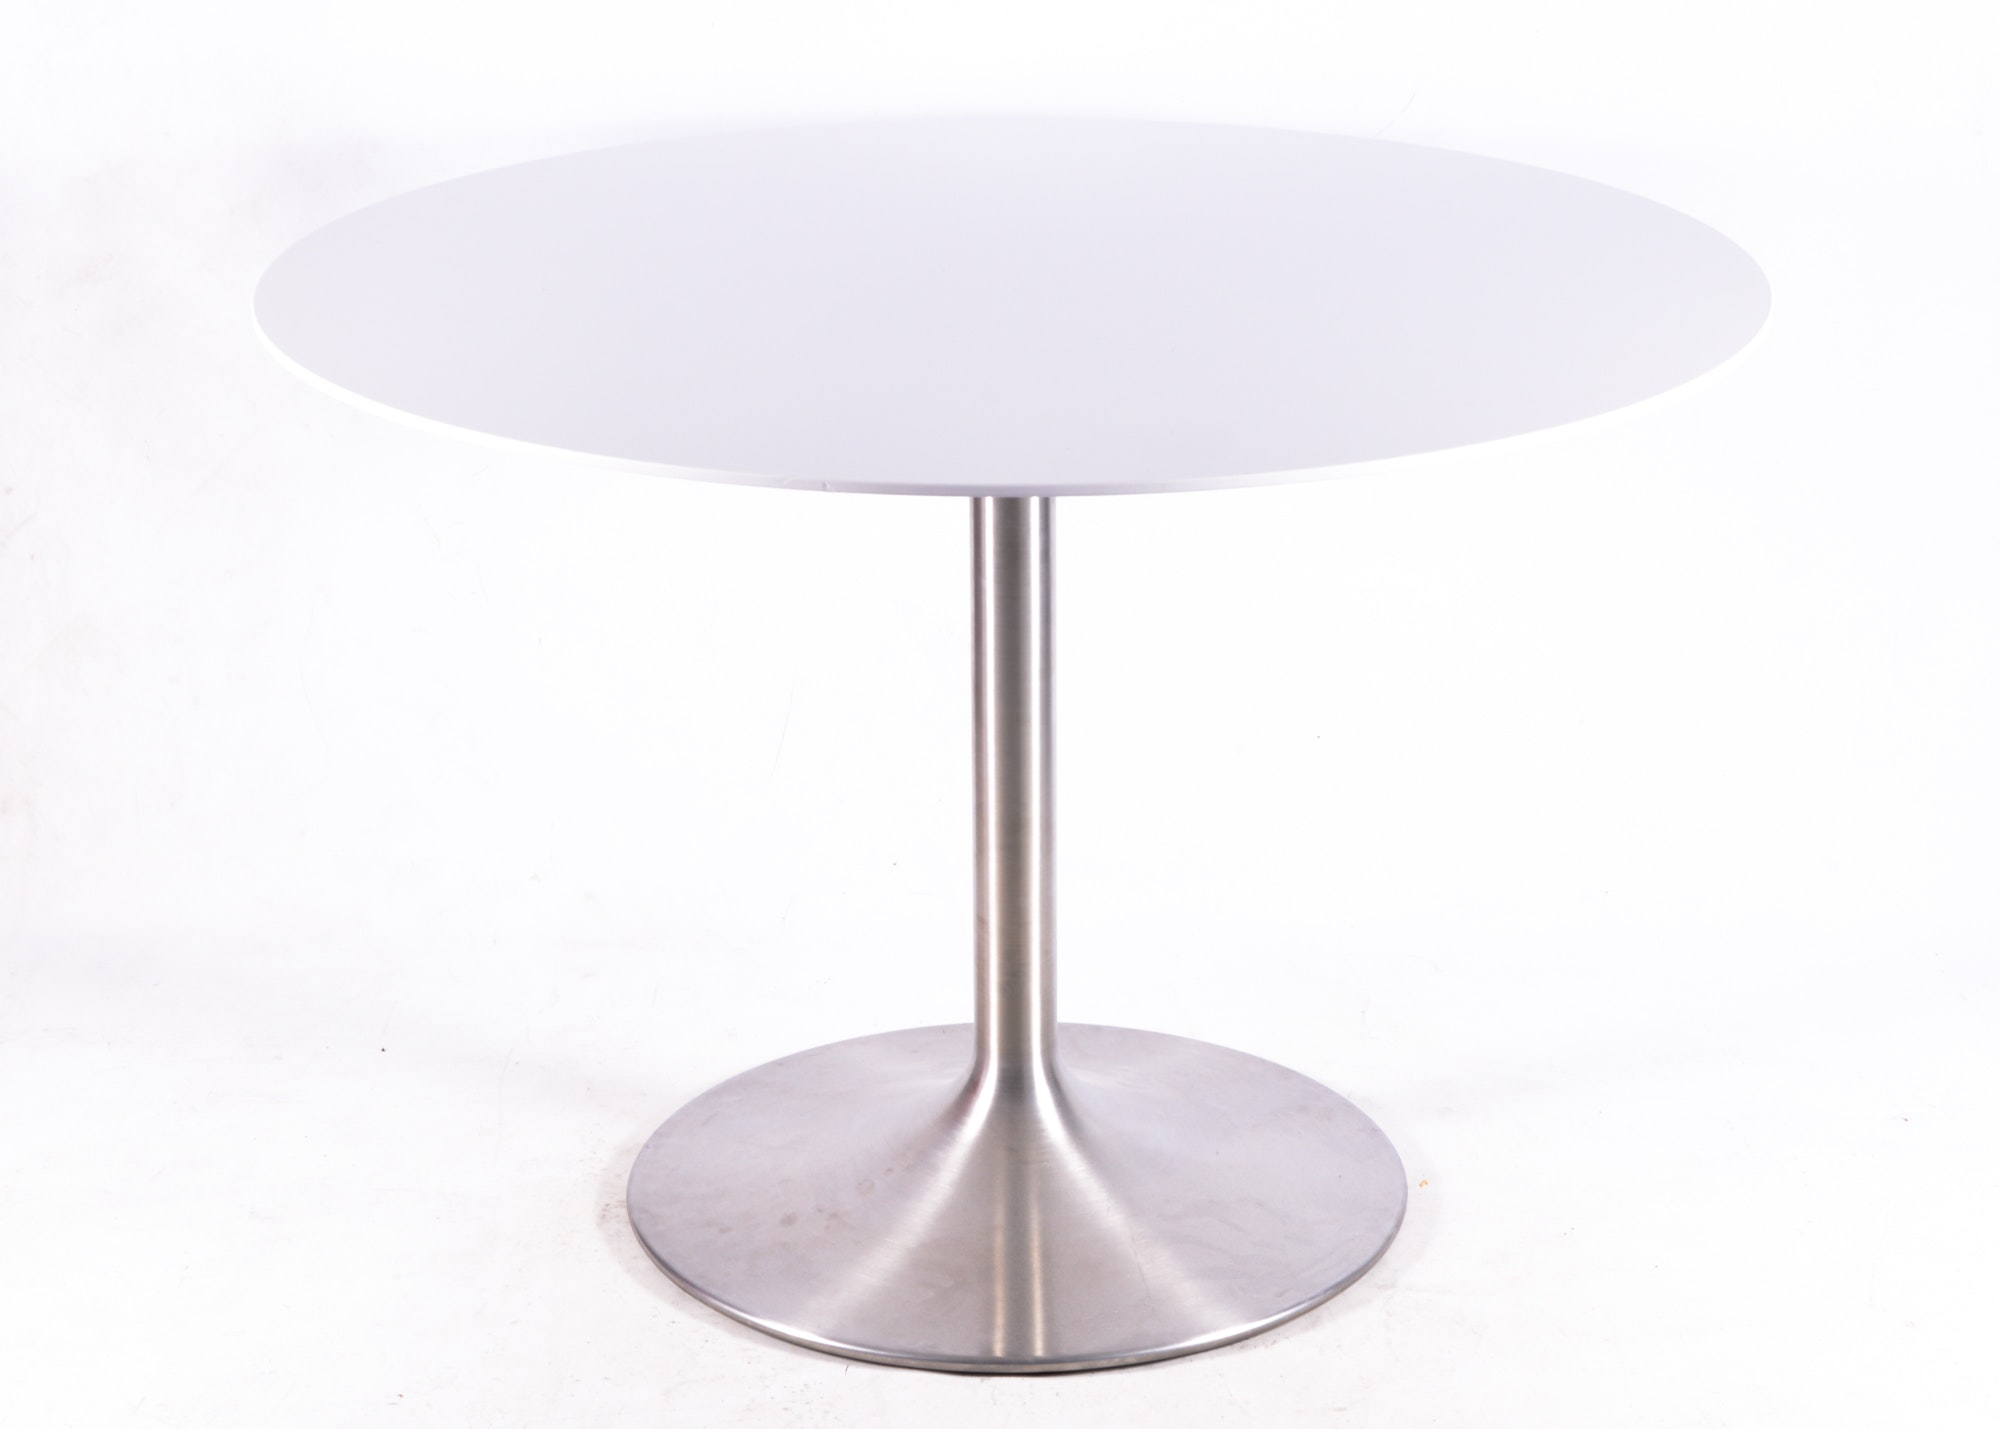 White Laminate Round Table With Stainless Steel Tulip Base ...